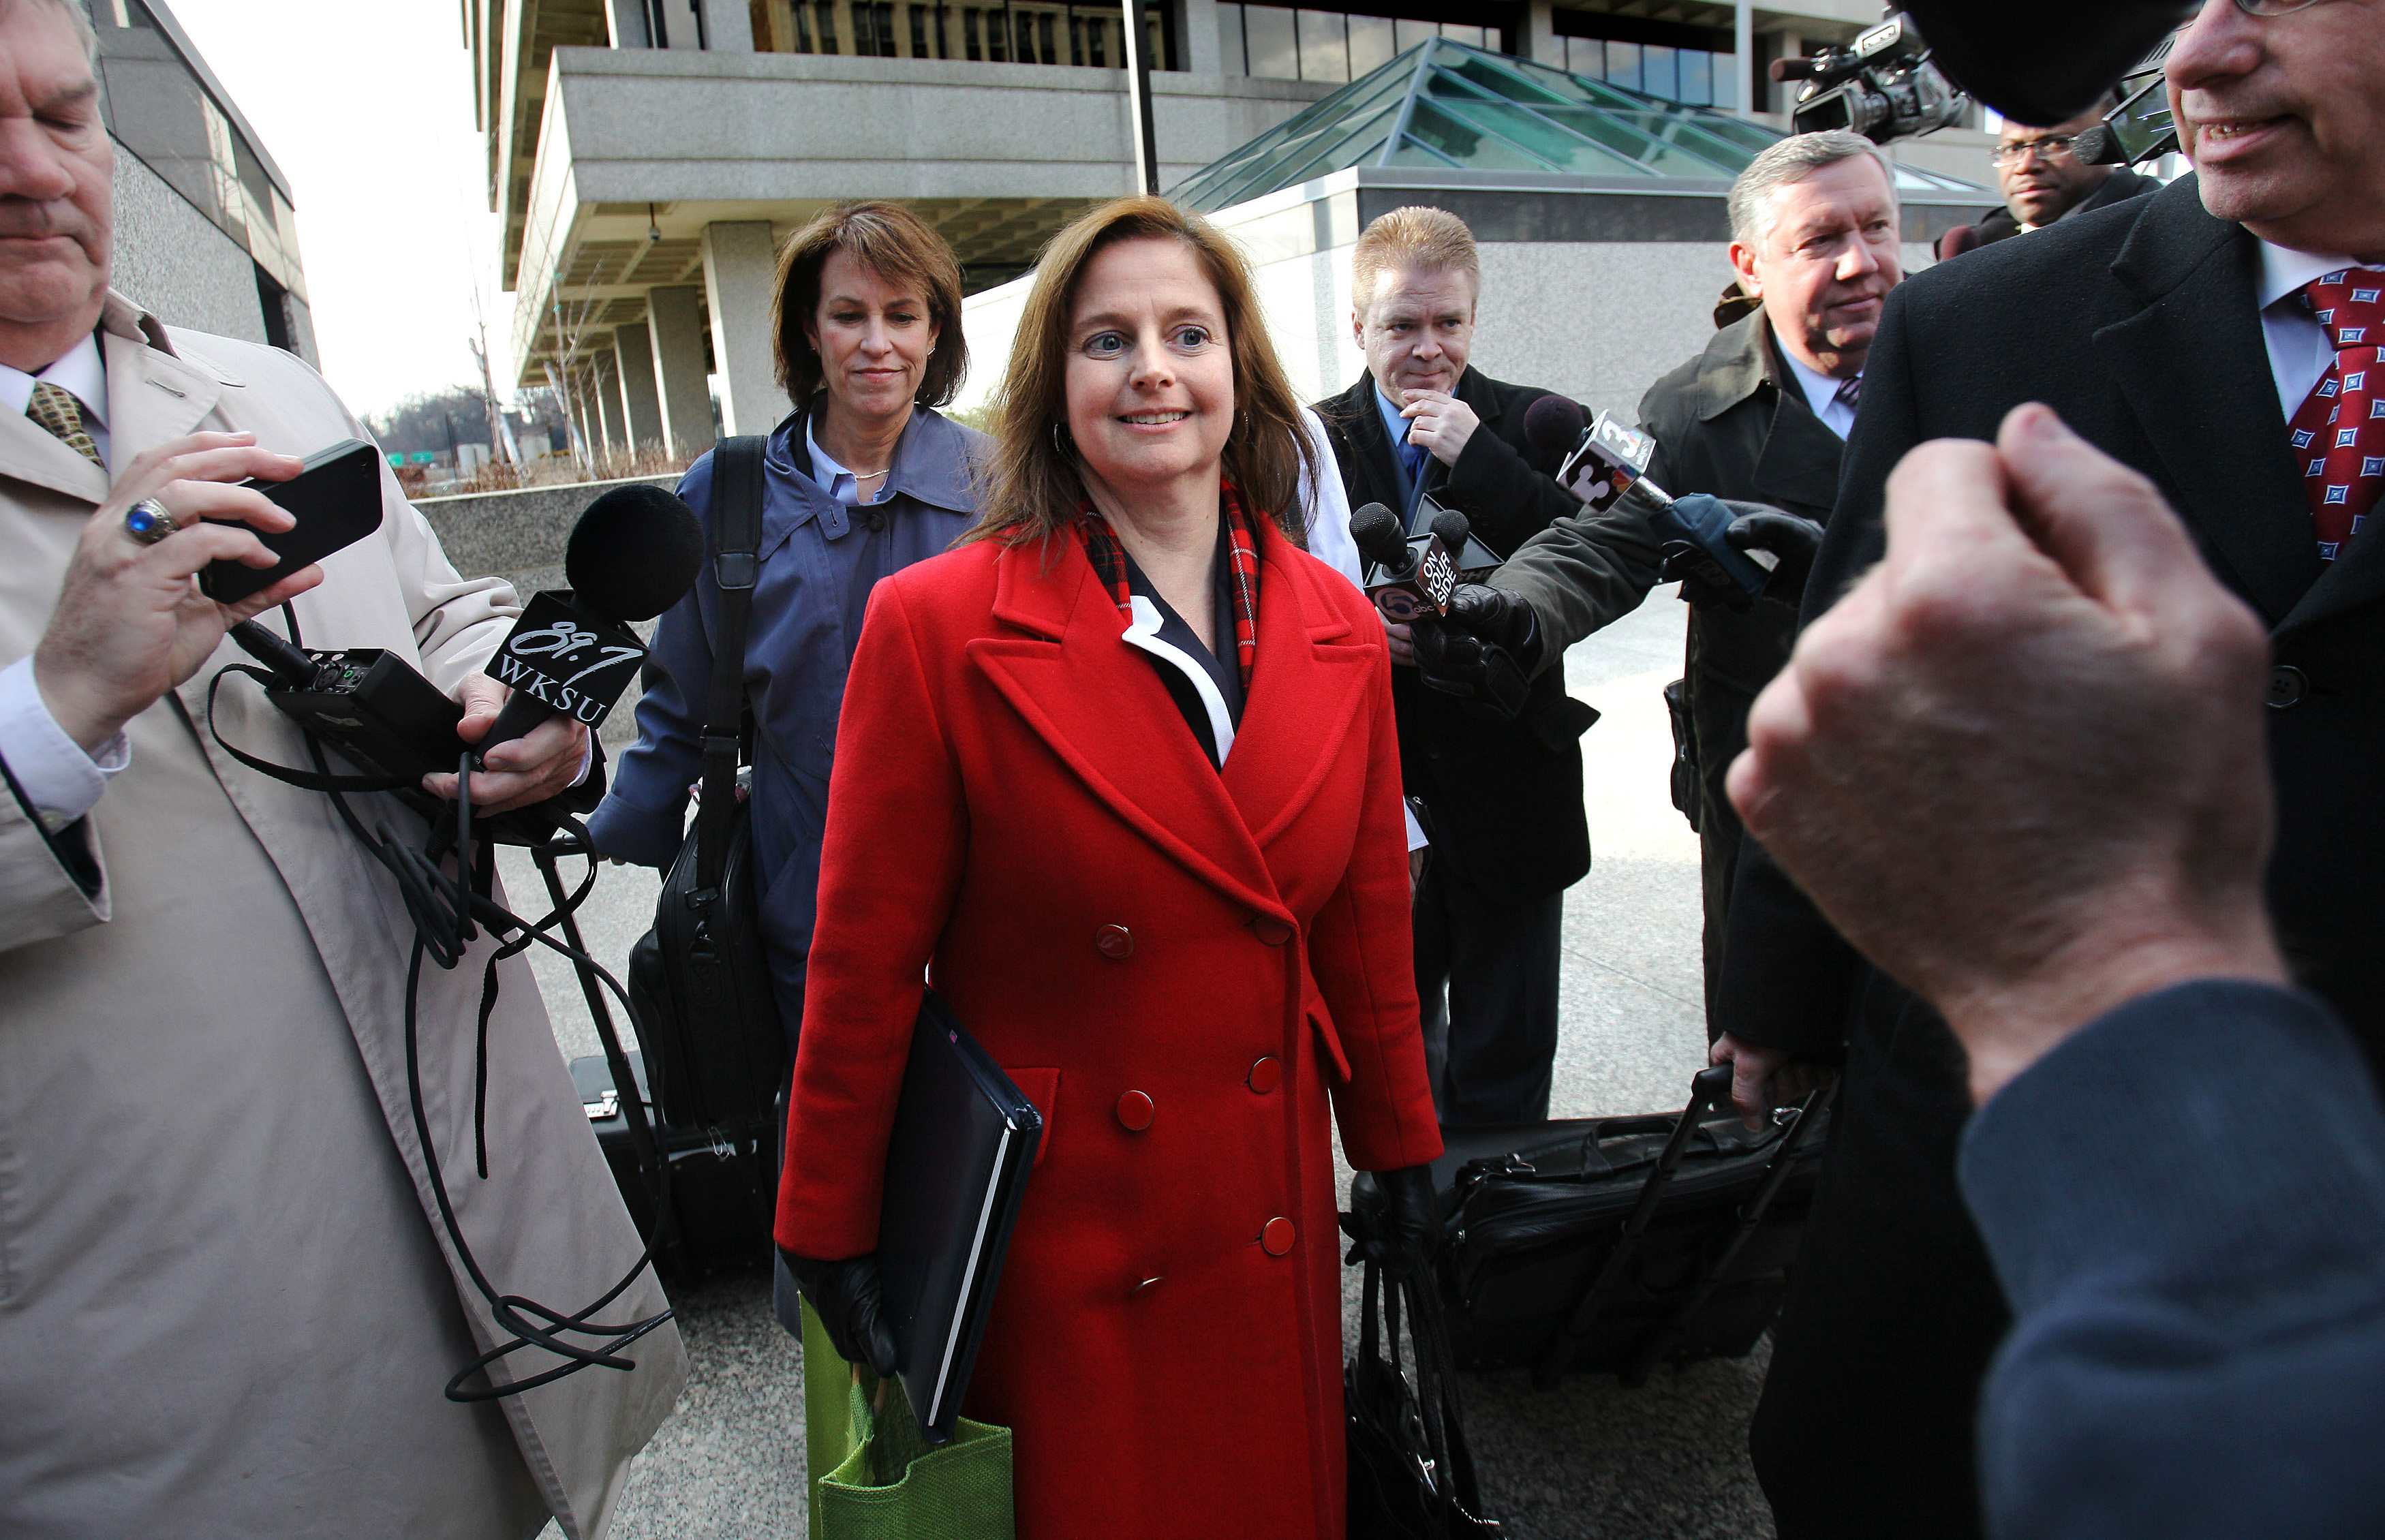 Former Cuyahoga County Common Pleas Judge Bridget McCafferty walks out of the federal courthouse in Akron after she was found guilty Friday afternoon of 10 counts of lying to FBI agents on Friday, March 25, 2011. (Lisa DeJong/The Plain Dealer)